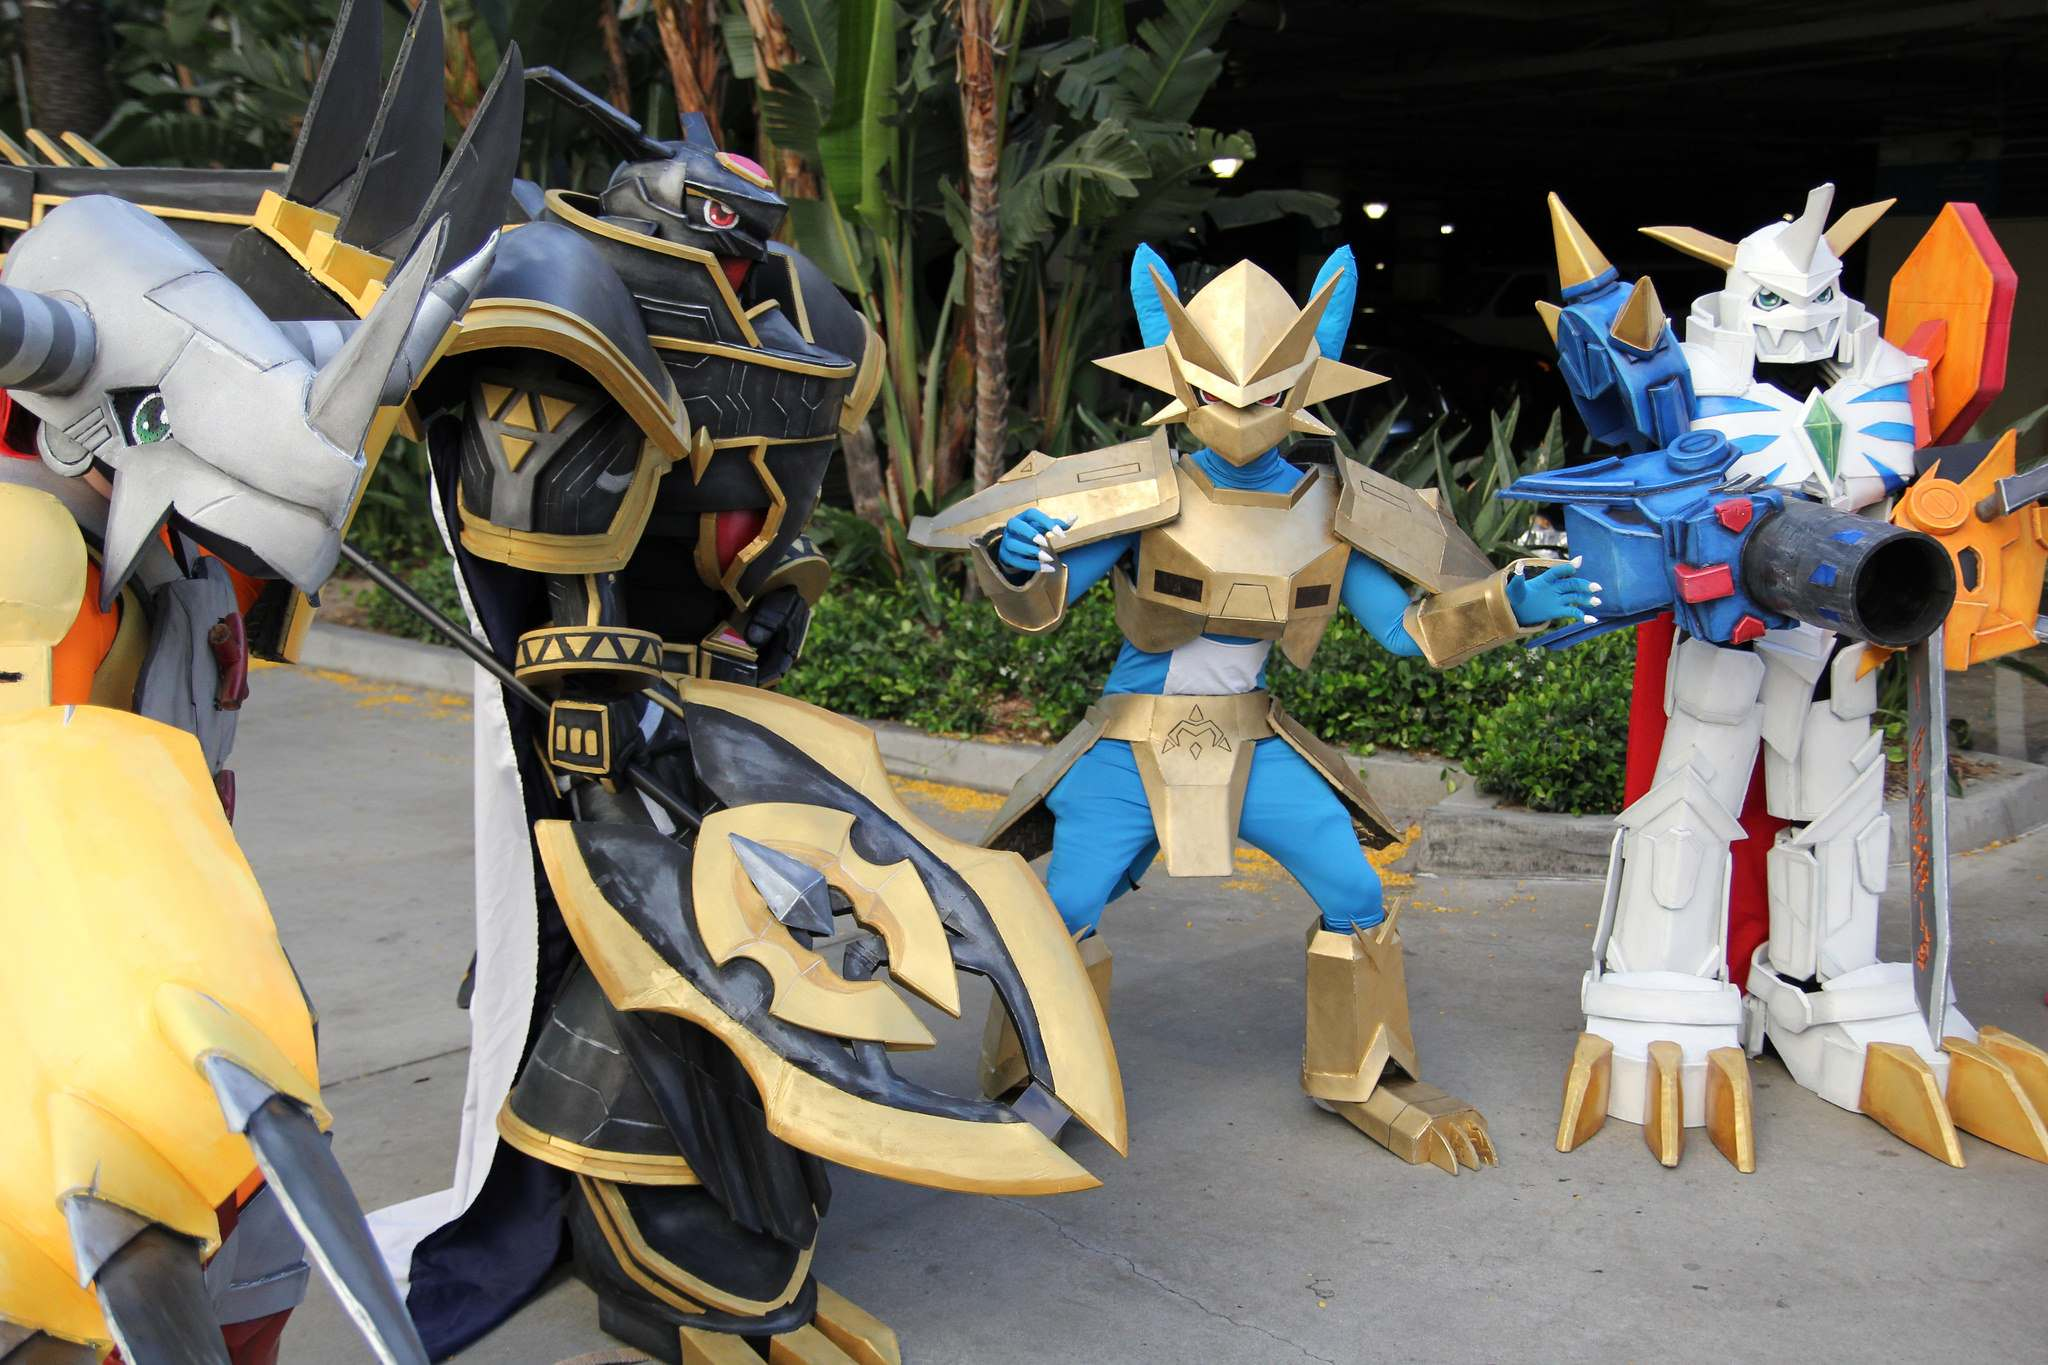 ax201614 Anime Expo 2016 in Los Angeles Convention Center